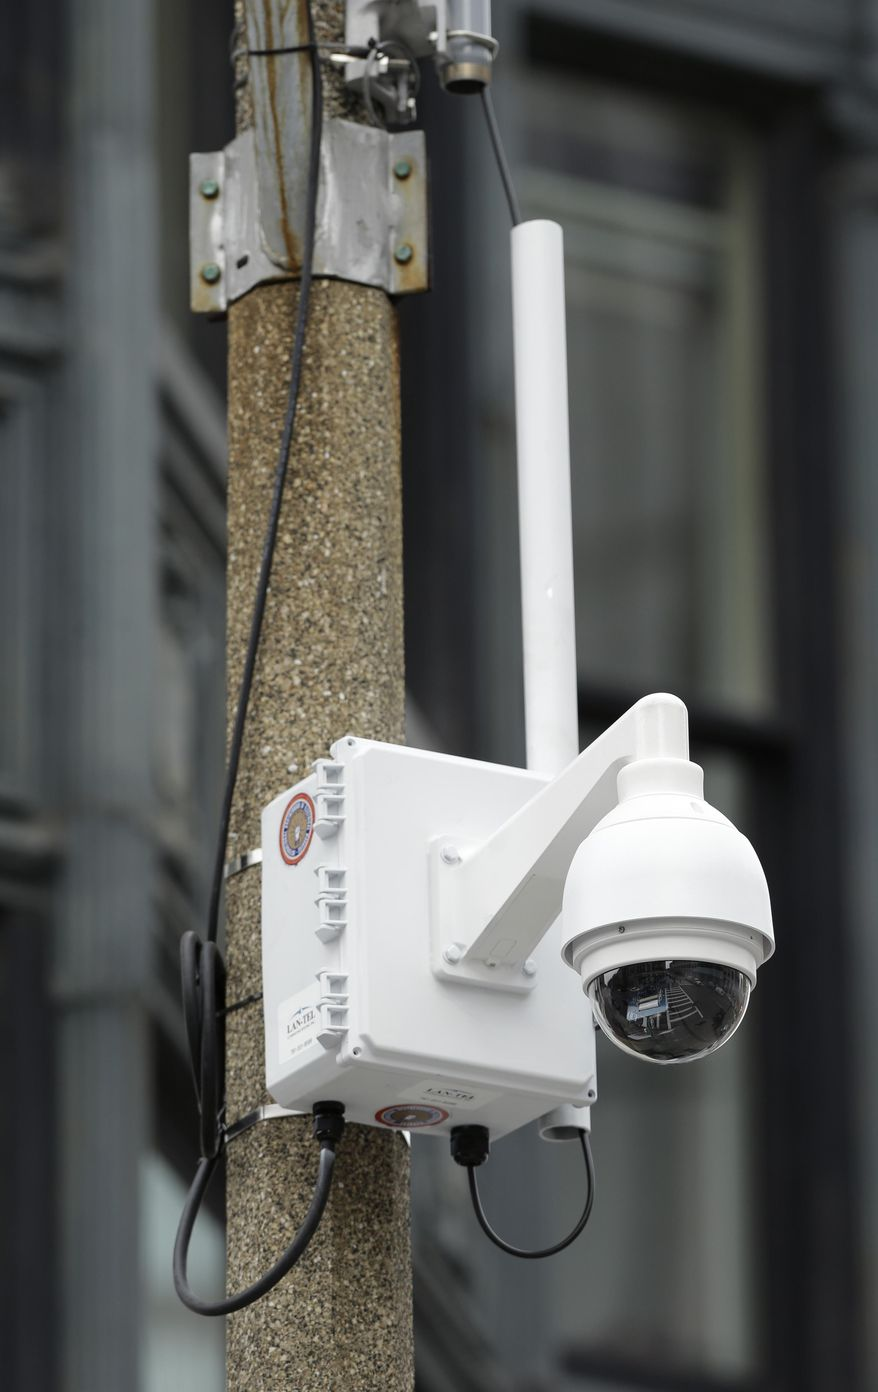 A surveillance camera is attached to a light pole along Boylston Street near the finish line of the Boston Marathon, Monday, April 14, 2014, in Boston. A year after twin pressure cooker bombs shattered the marathon and paralyzed the area for days, federal prosecutors say they have a trove of evidence ready to use against the surviving suspect, but many questions remain. (AP Photo/Steven Senne)